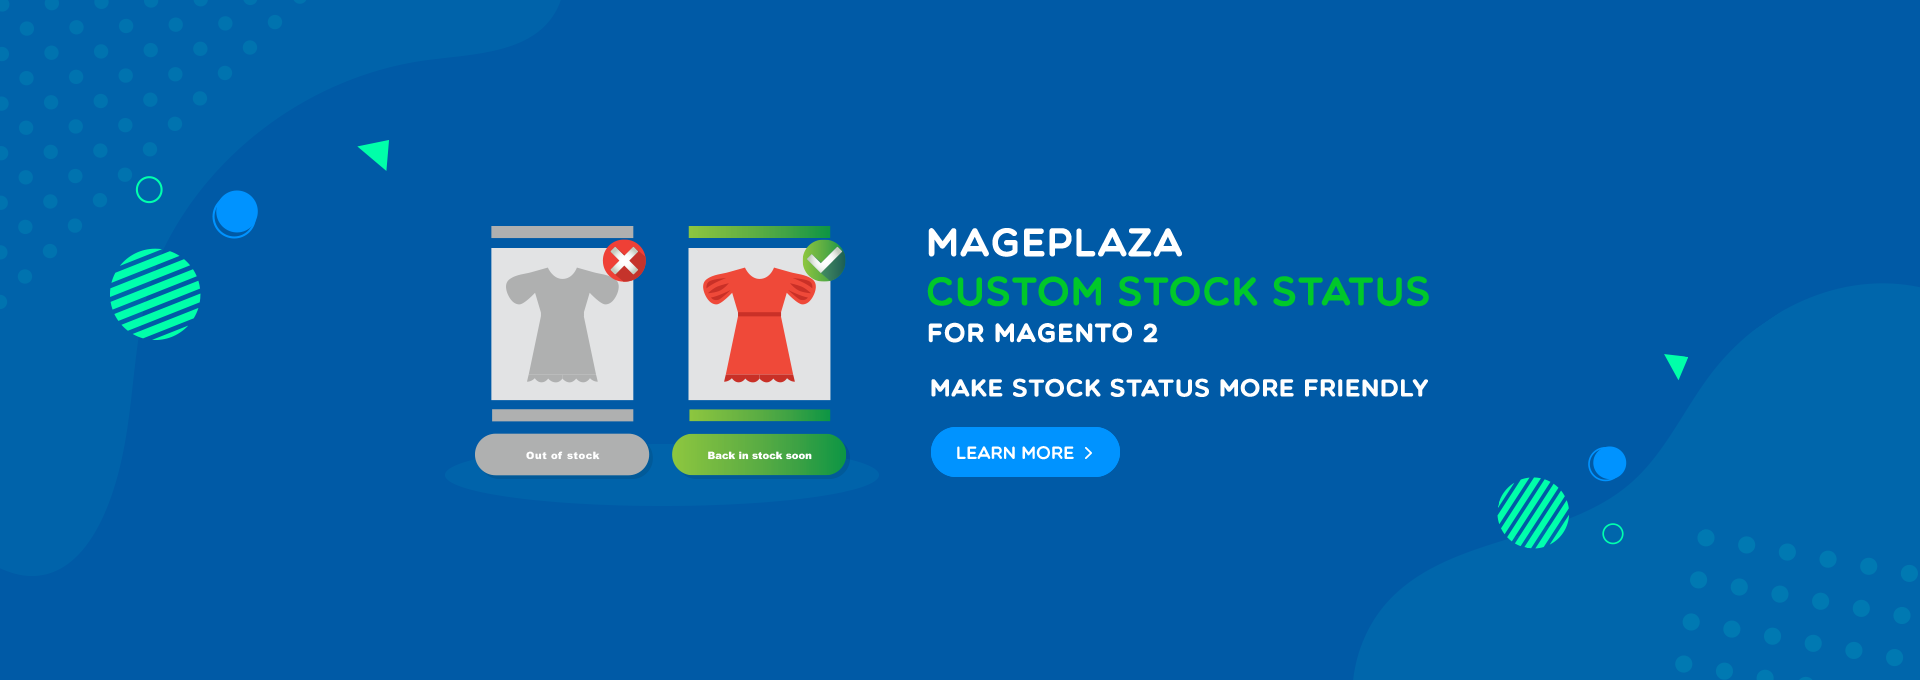 Magento 2 stores - Attract more customers by Custom Stock Status